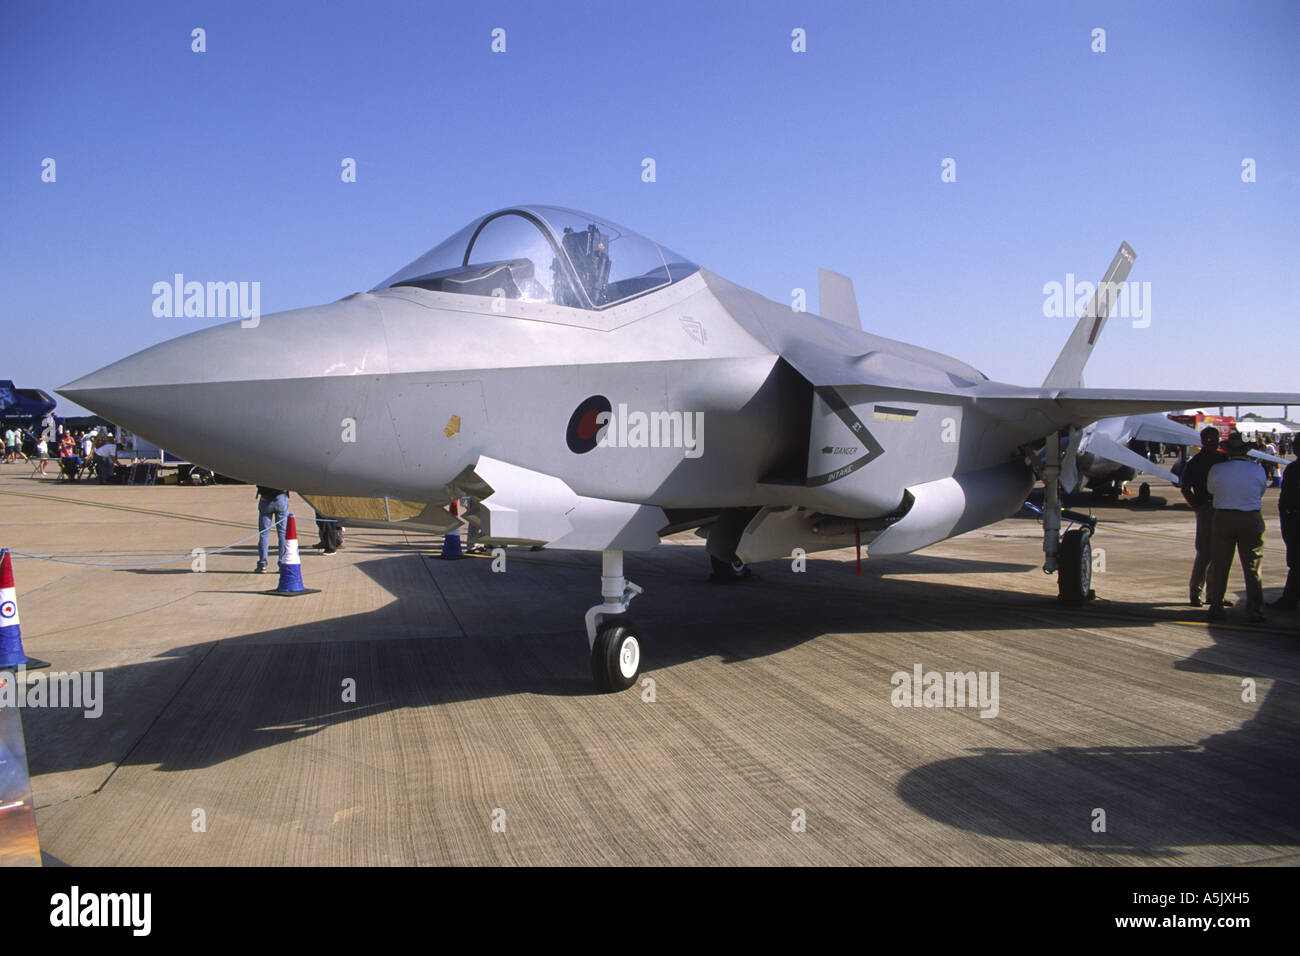 Lockheed Martin F-35 Lightning II Joint Strike Fighter aircraft replica in RAF colours - Stock Image